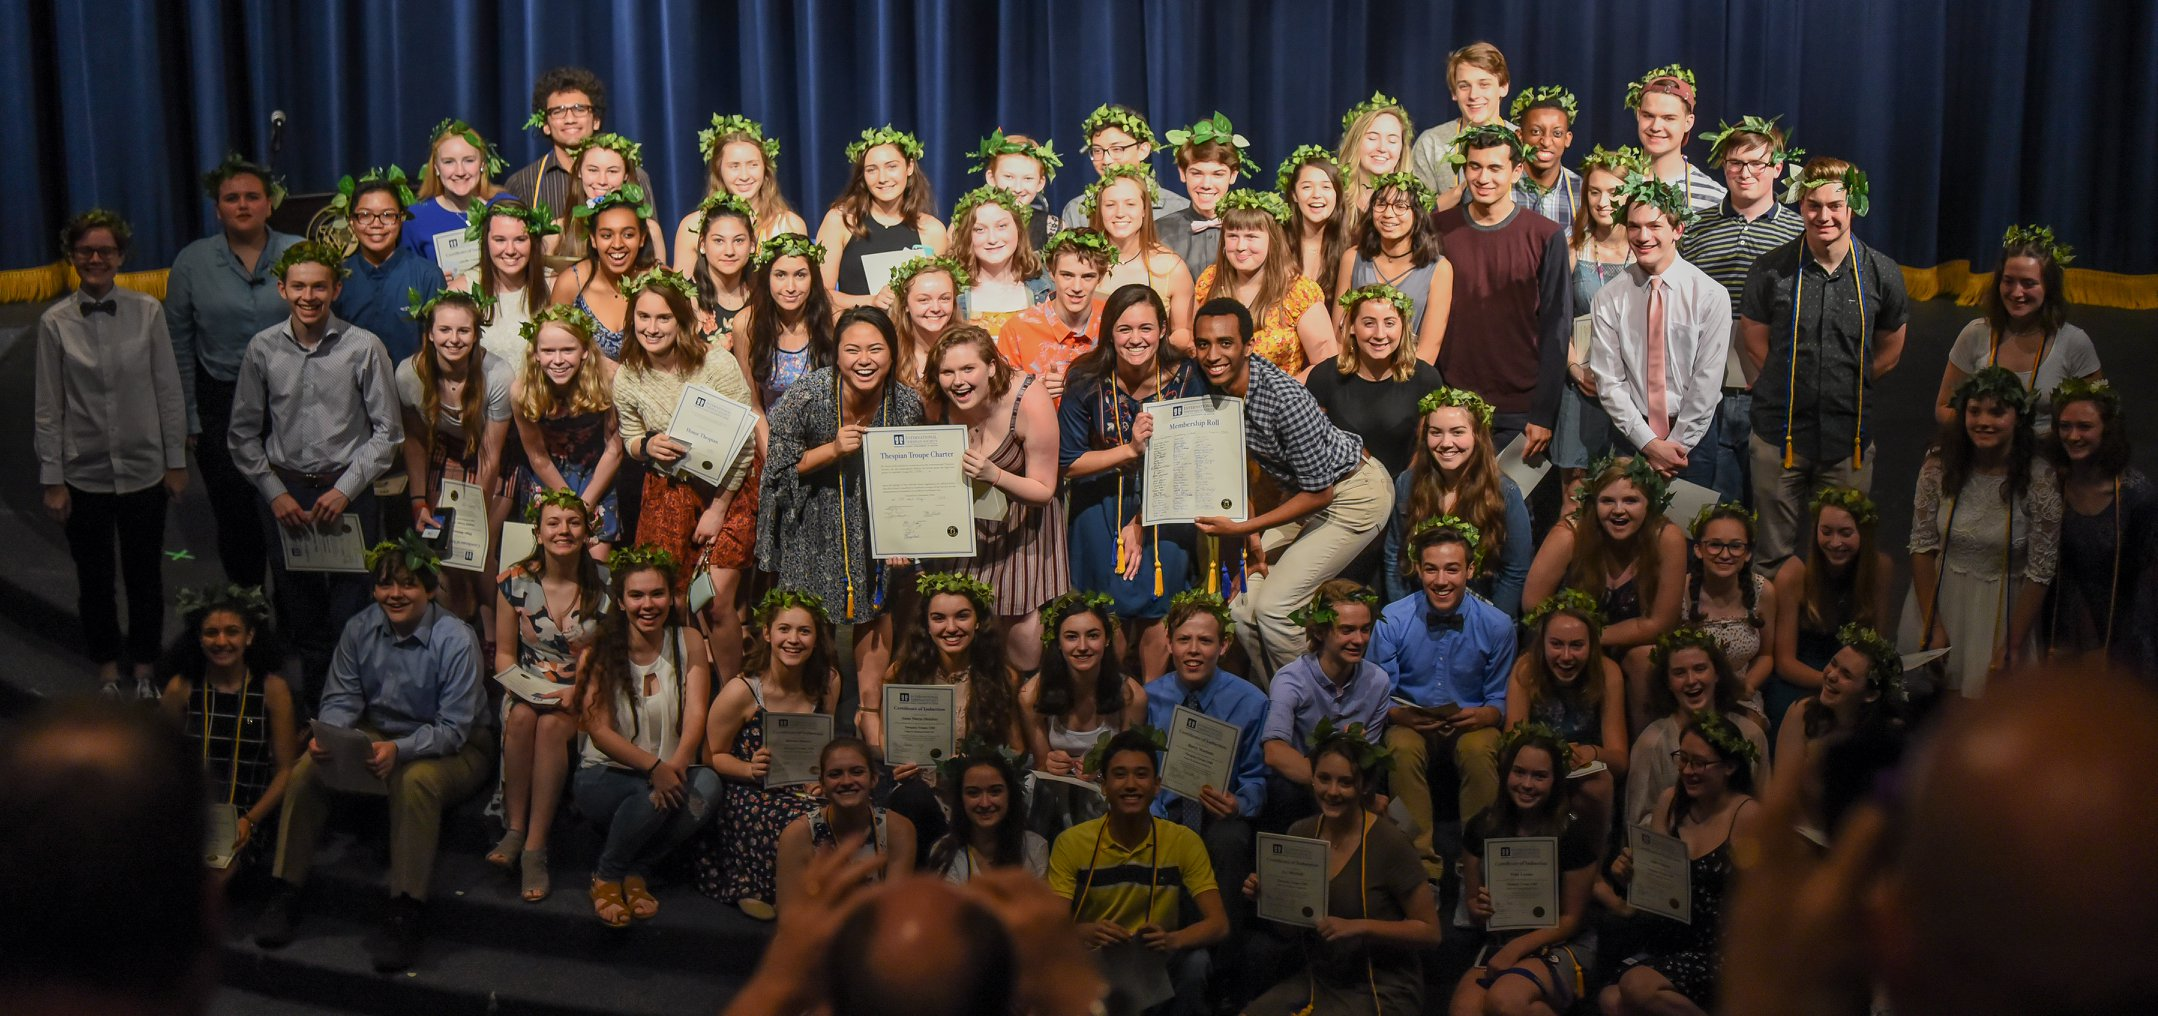 RTC troupe induction ceremony - may 2019